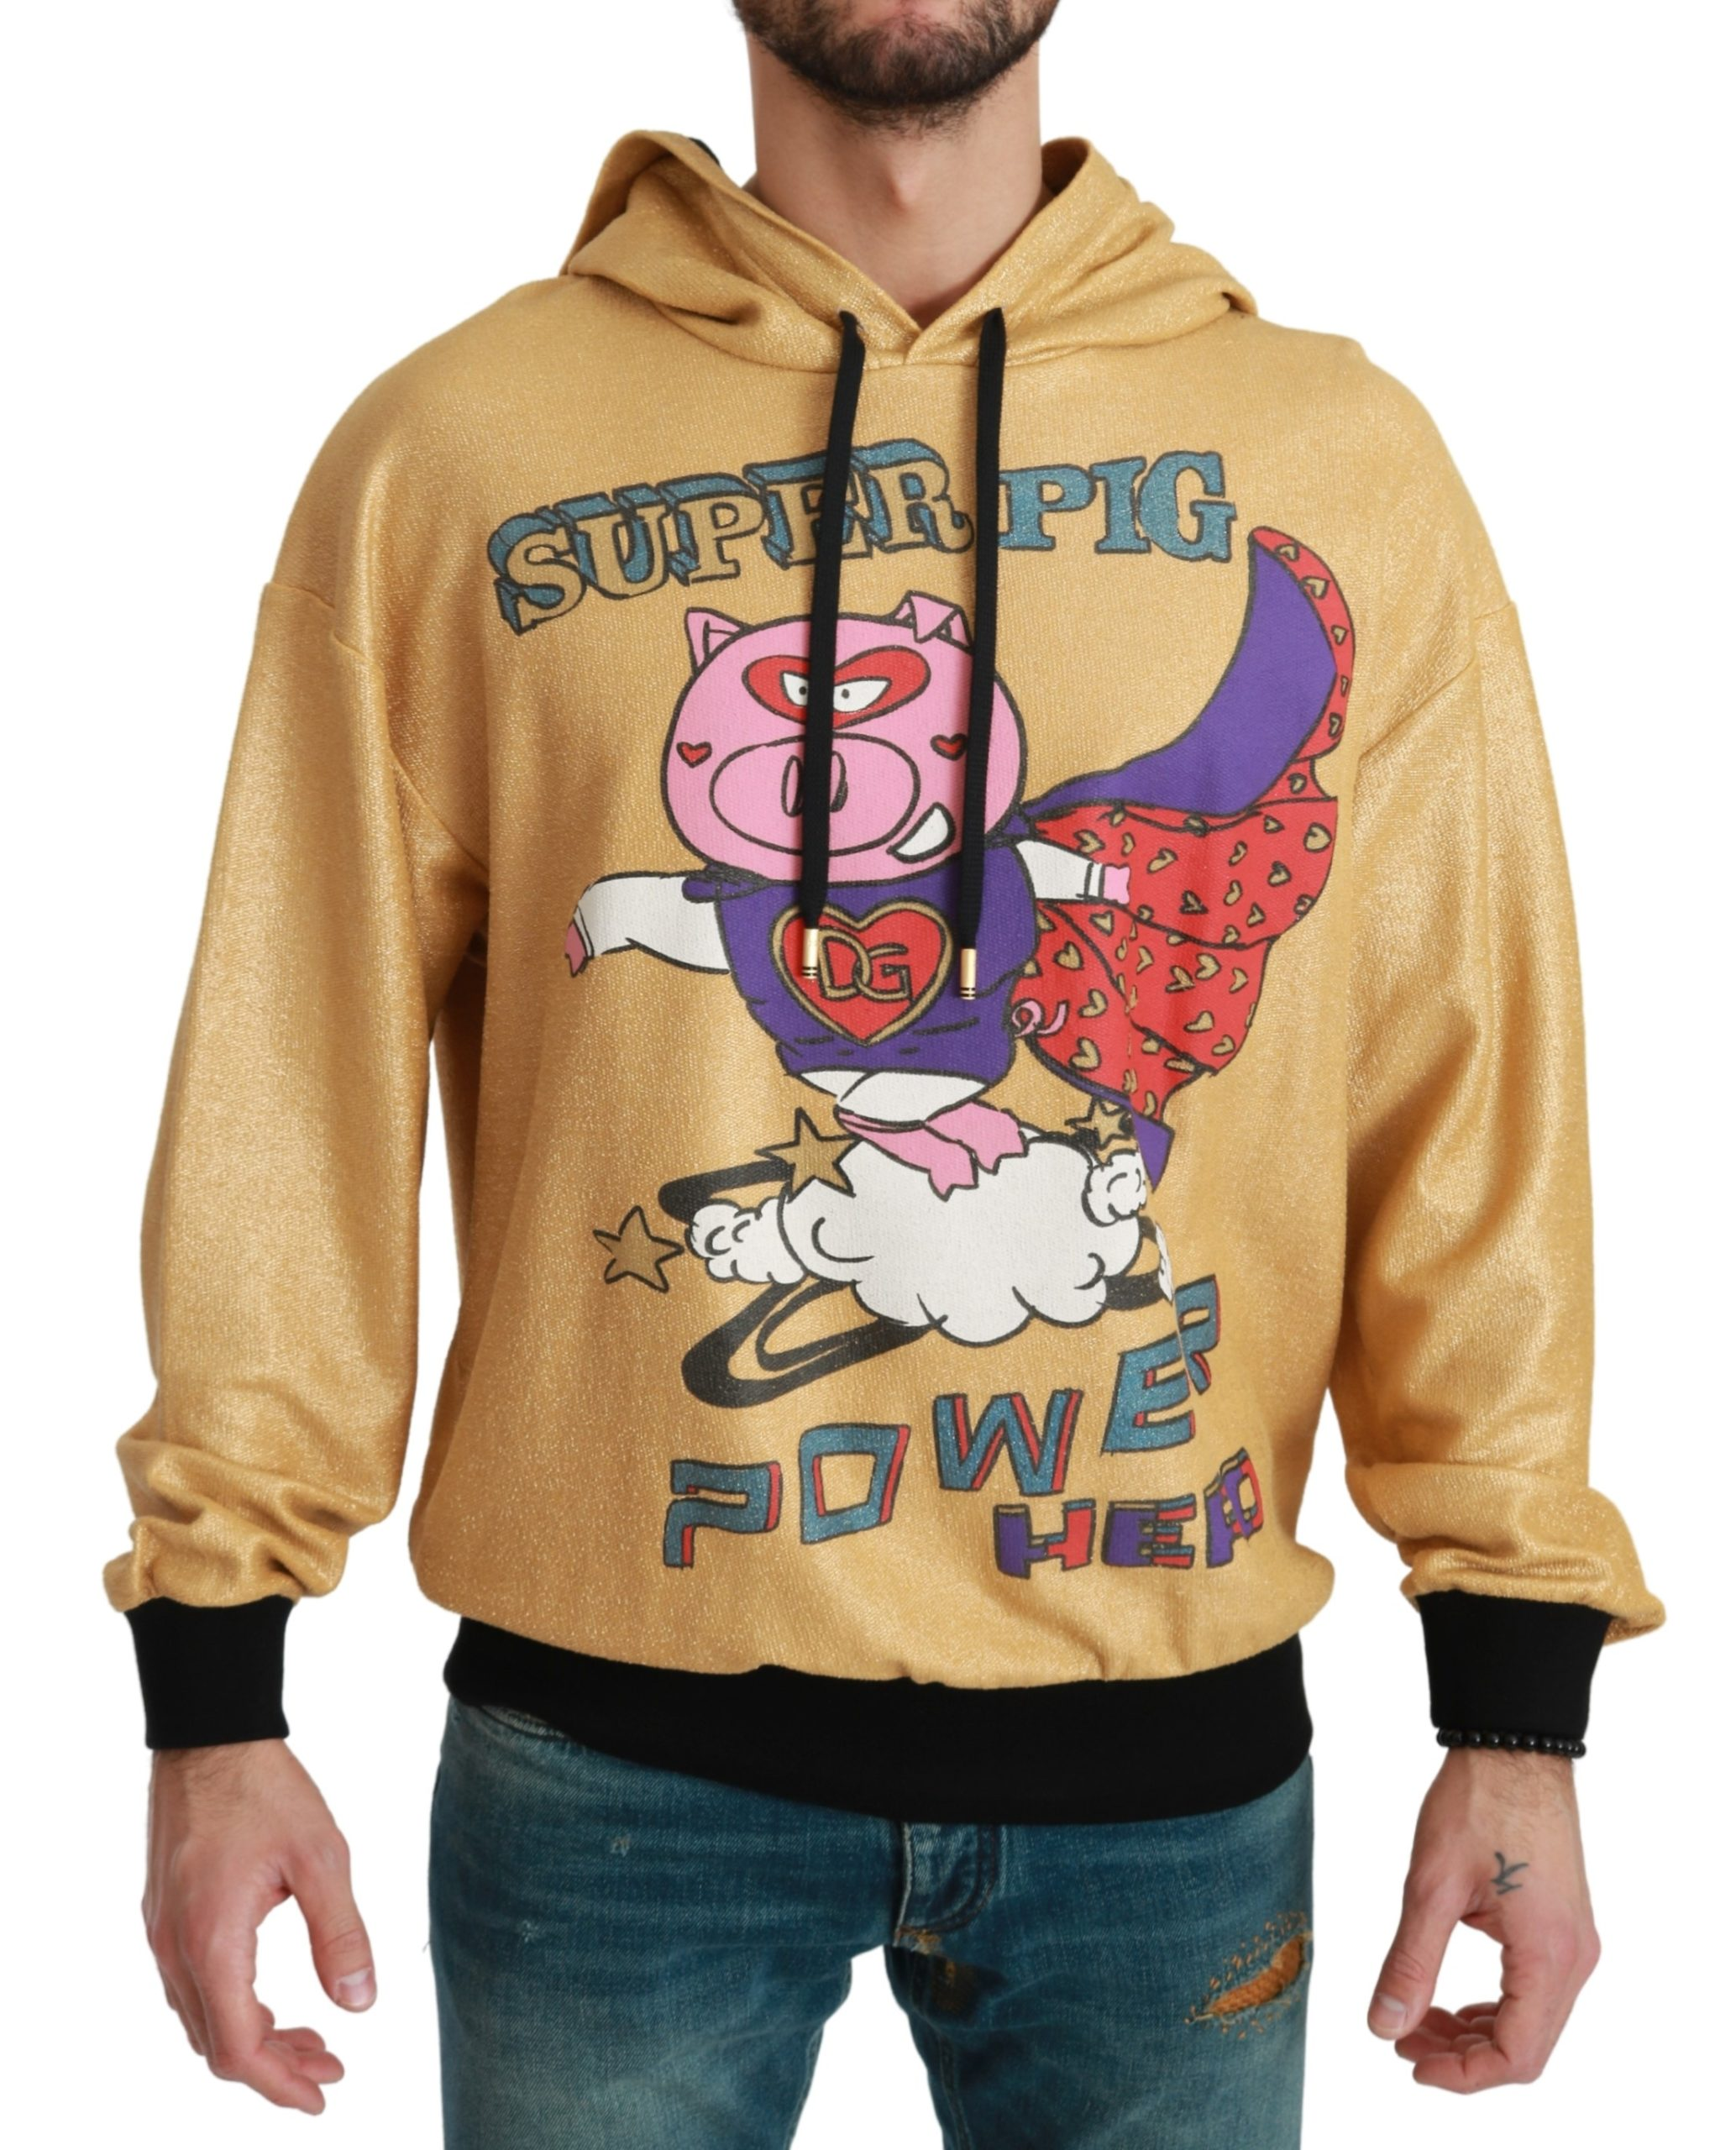 Dolce & Gabbana Men's Pig of the Year Hooded Sweater Gold TSH4614 - IT44 | XS